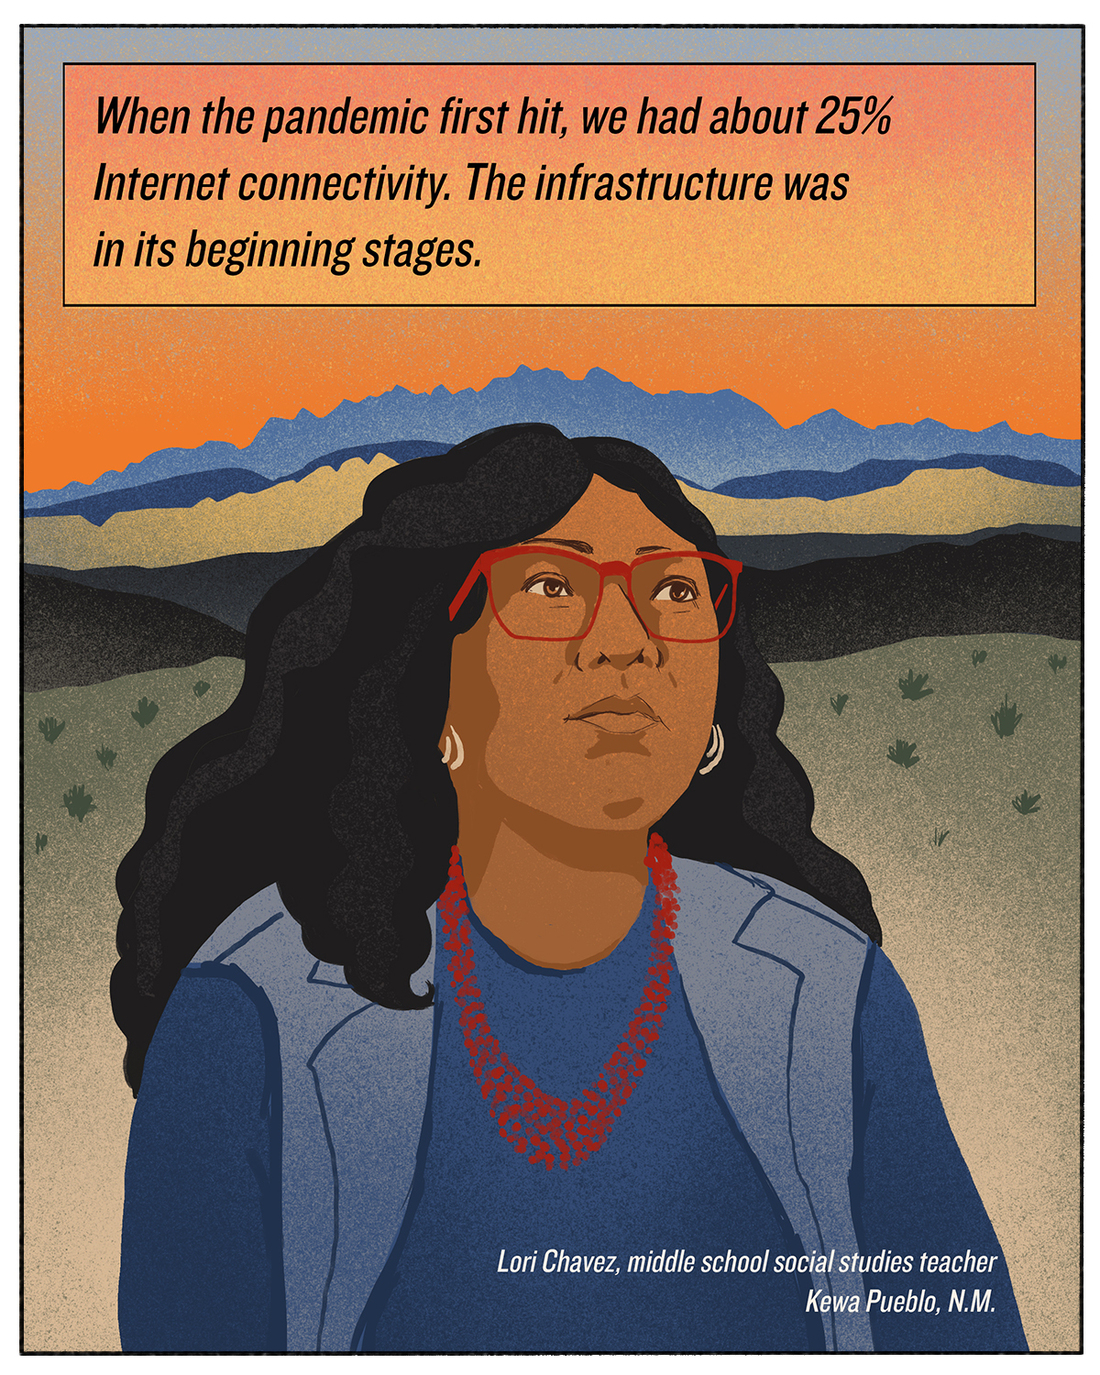 """""""When the pandemic first hit, we had about 25% Internet connectivity. The infrastructure was in its beginning stages."""" Lori Chavez, middle school social studies teacher, Kewa Pueblo, N.M."""